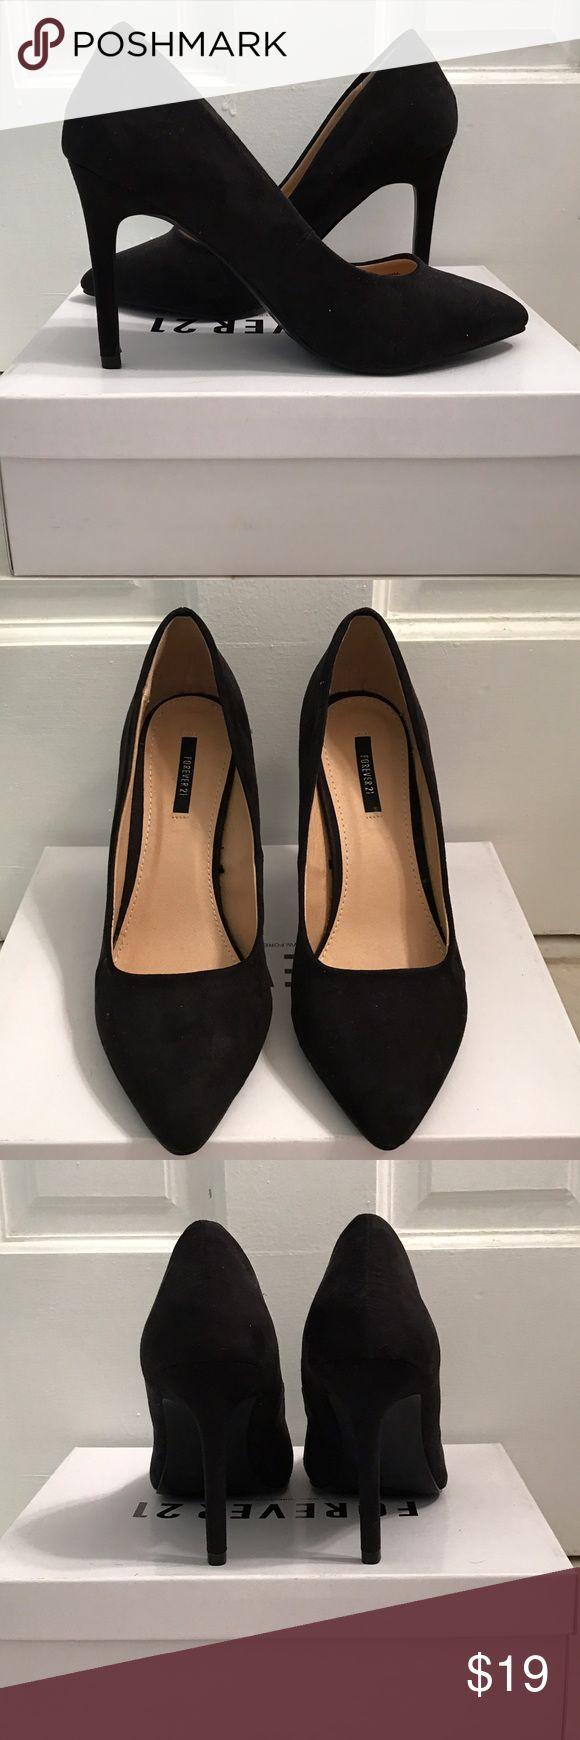 Black Suede Pumps Brand new black suede Pumps. 3 inch heel. Forever 21 Shoes Heels